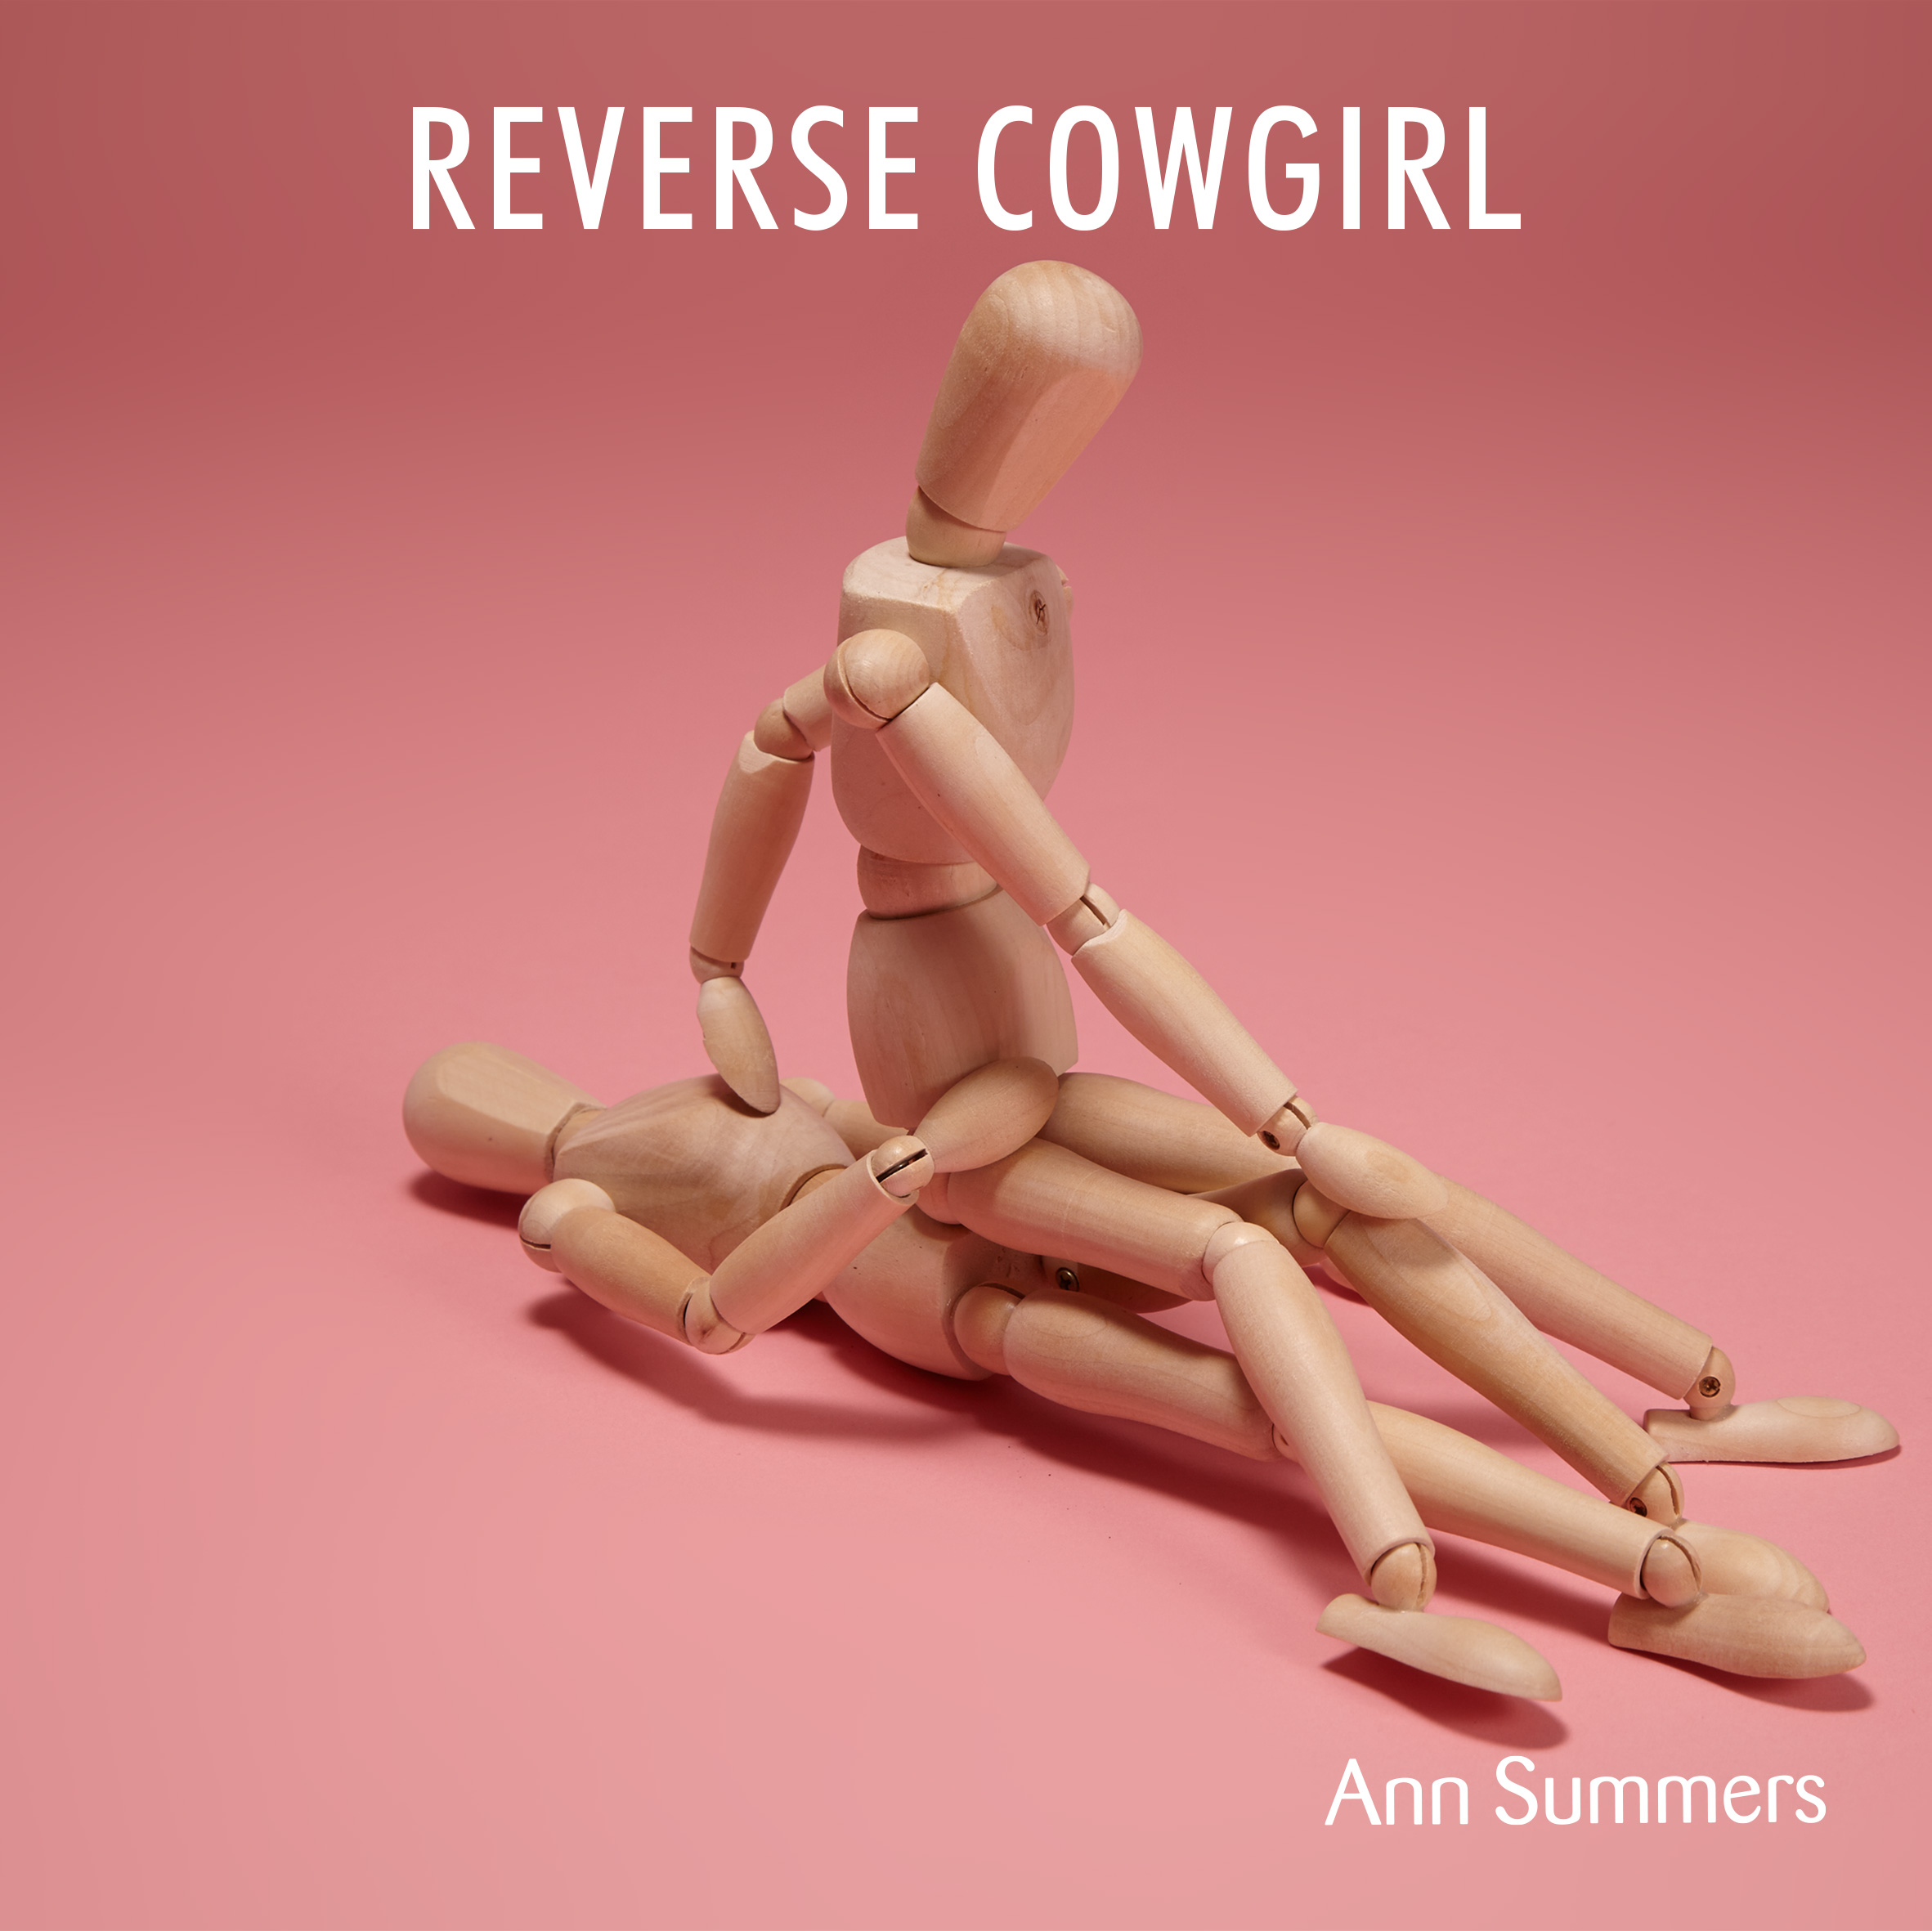 Reverse Cowgirl Sex Position